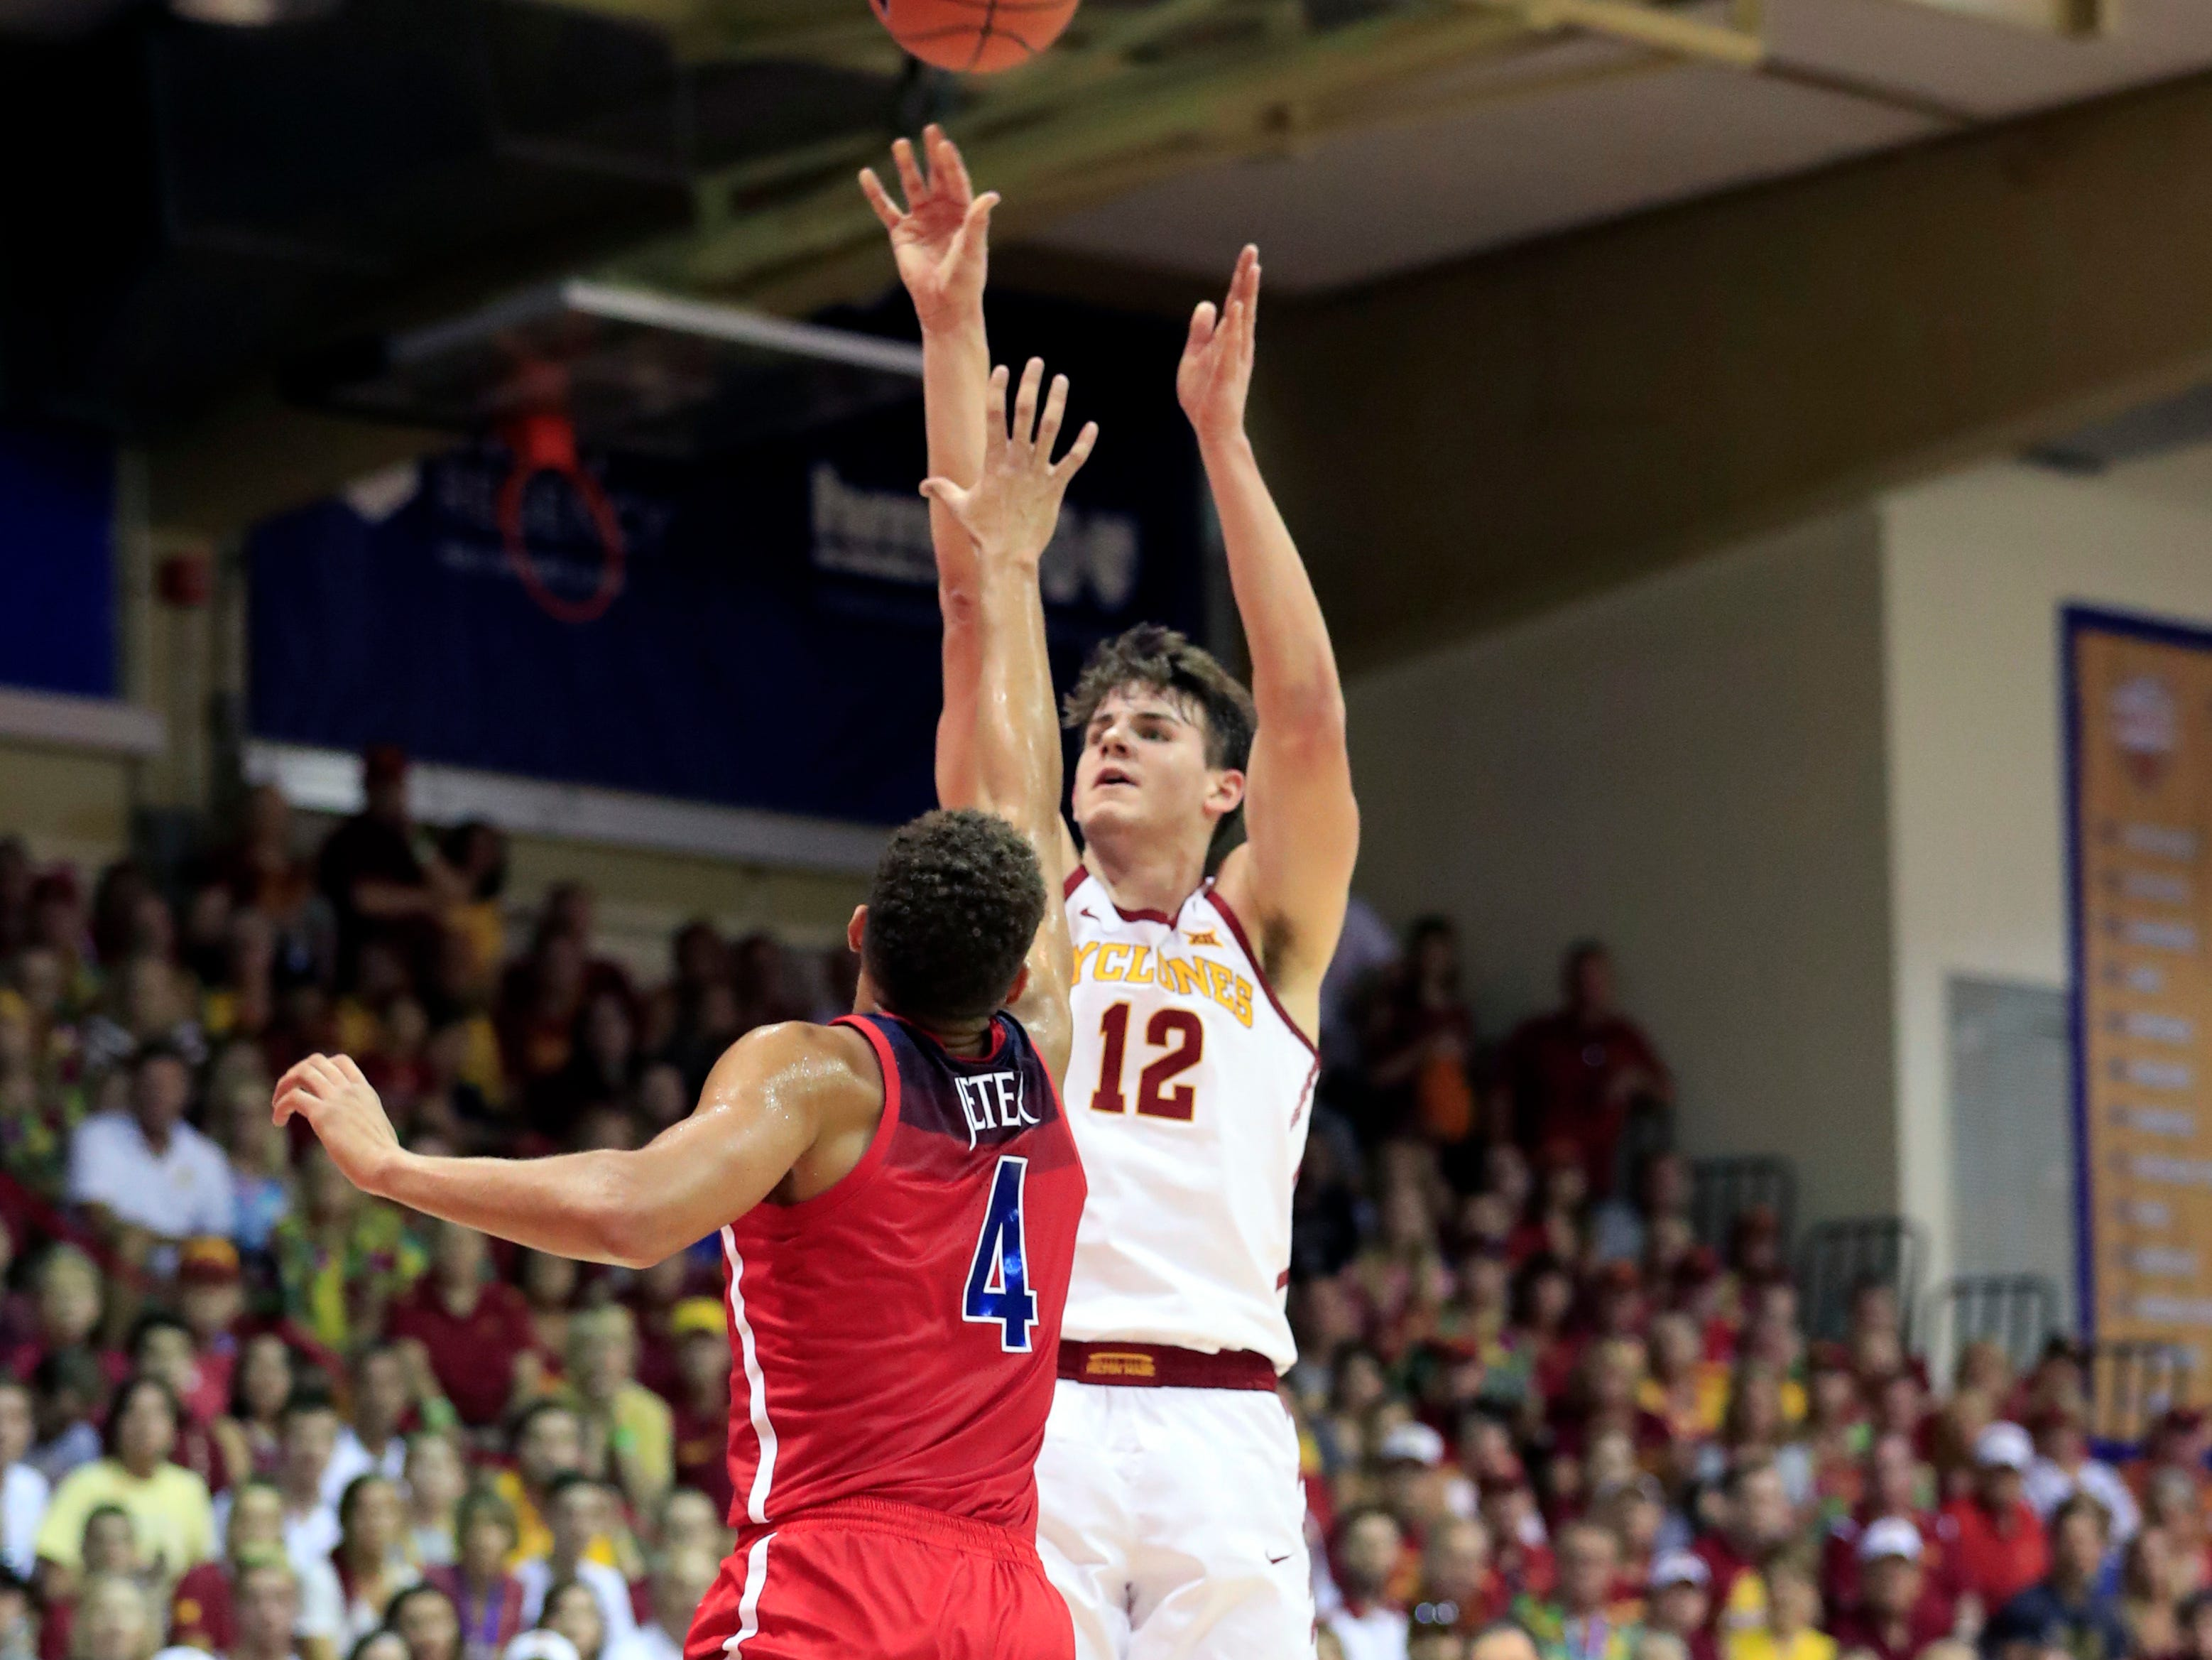 Iowa State forward Michael Jacobson (12) shoots over Arizona center Chase Jeter (4) during the first half of an NCAA college basketball game at the Maui Invitational, Monday, Nov. 19, 2018, in Lahaina, Hawaii. (AP Photo/Marco Garcia)